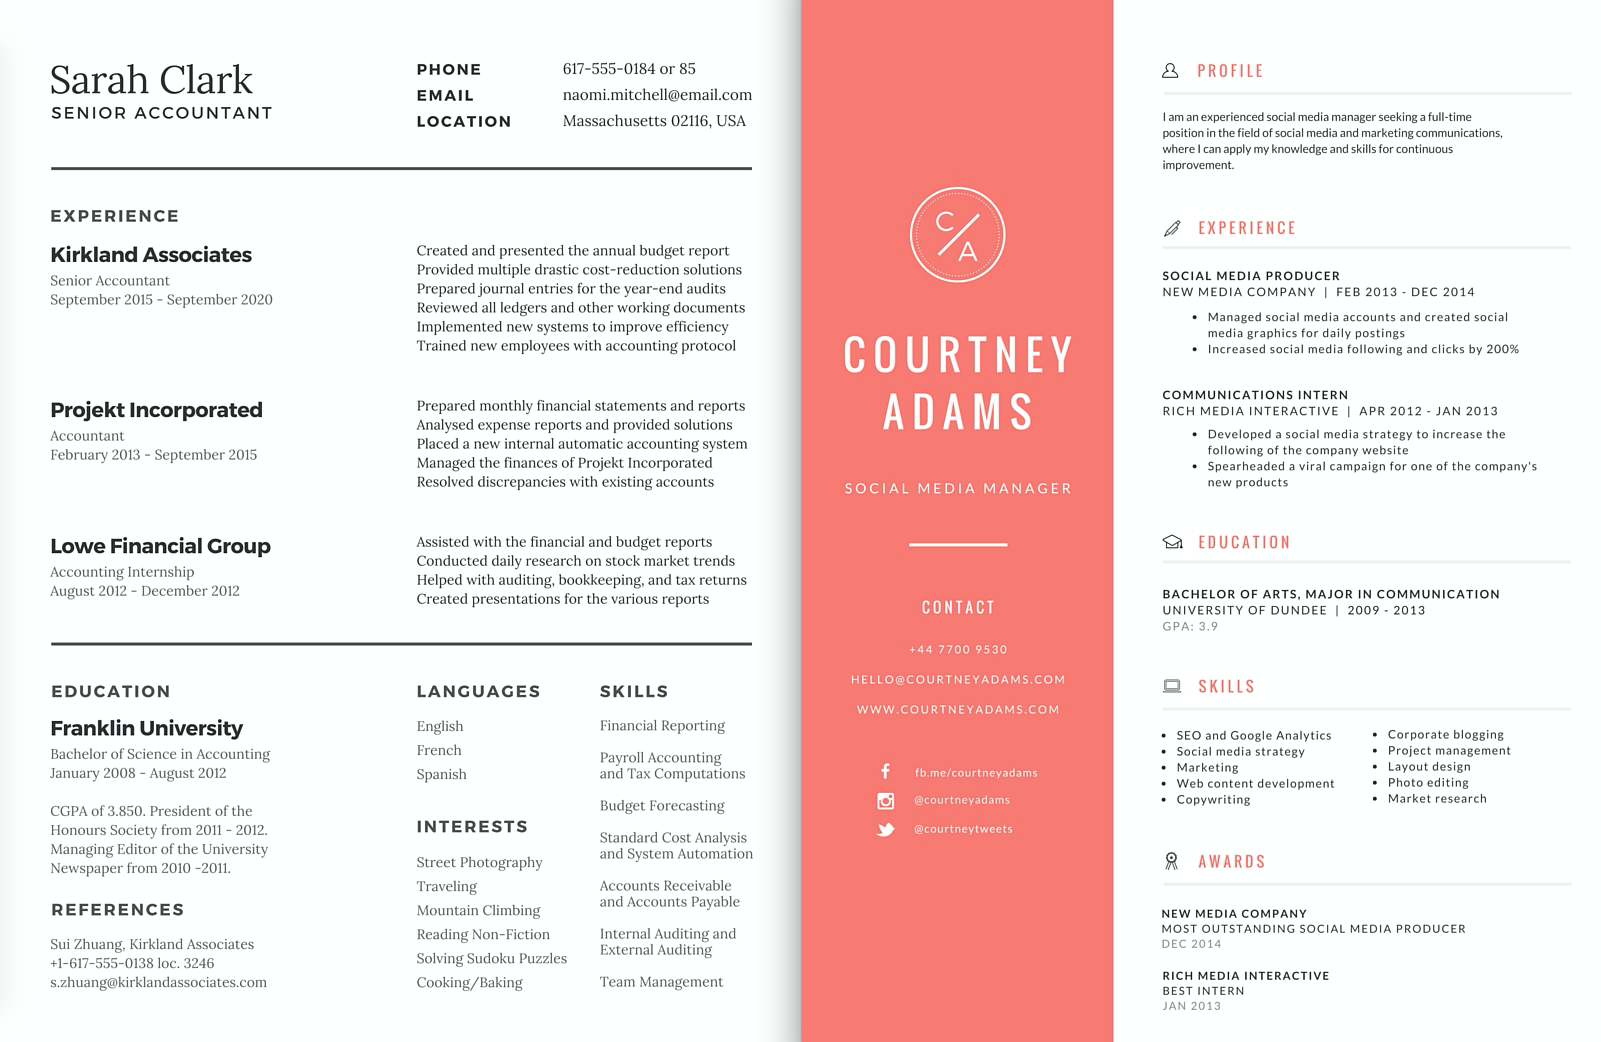 redesigning your resume for 2016 - Modern Resumes